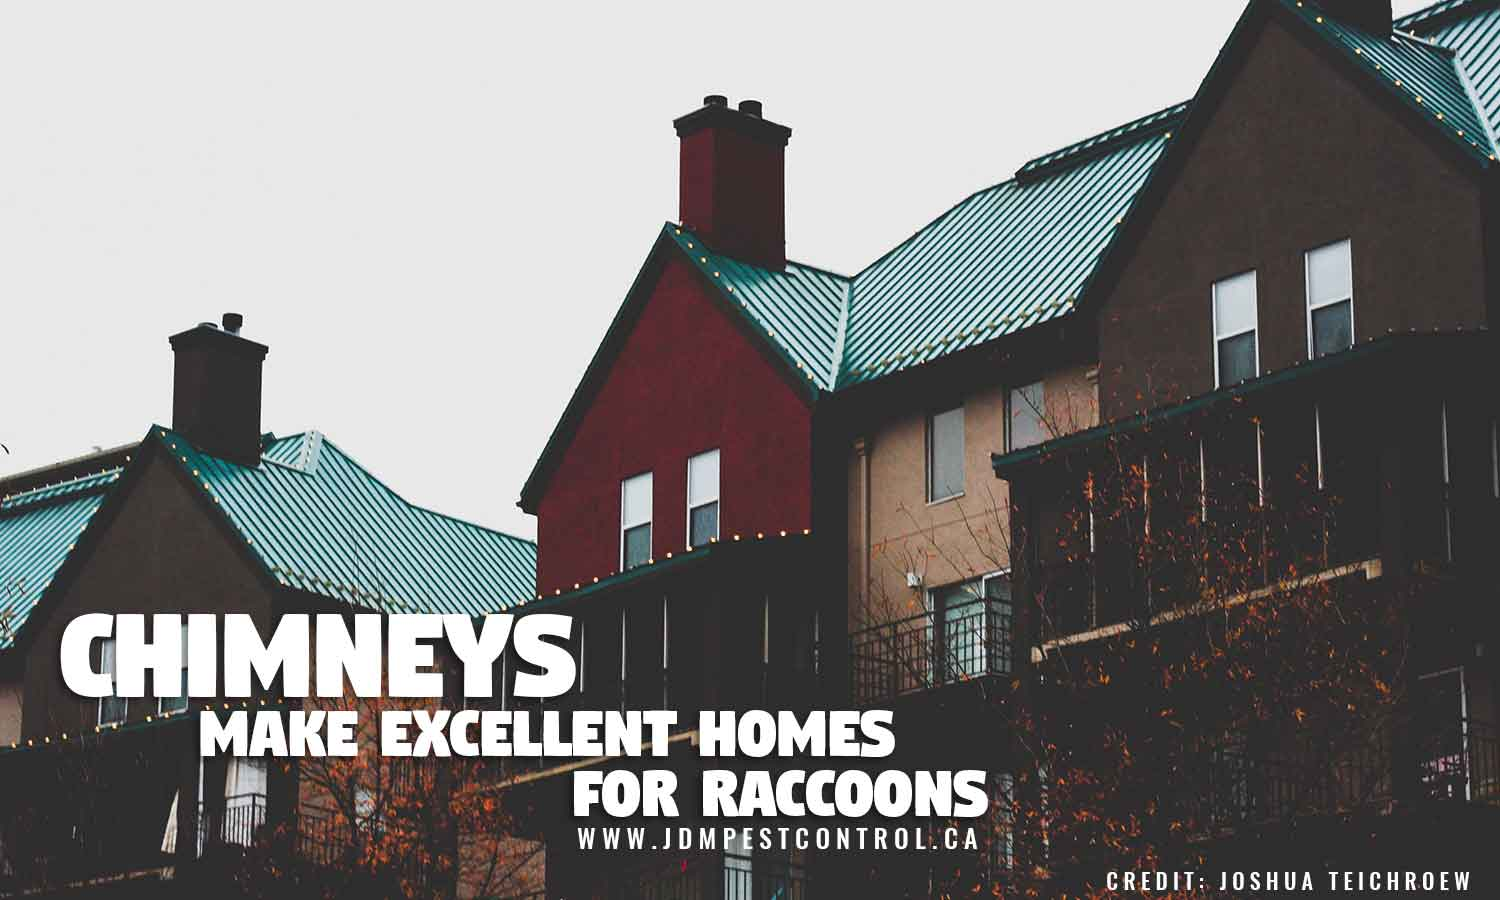 Chimneys make excellent homes for raccoons